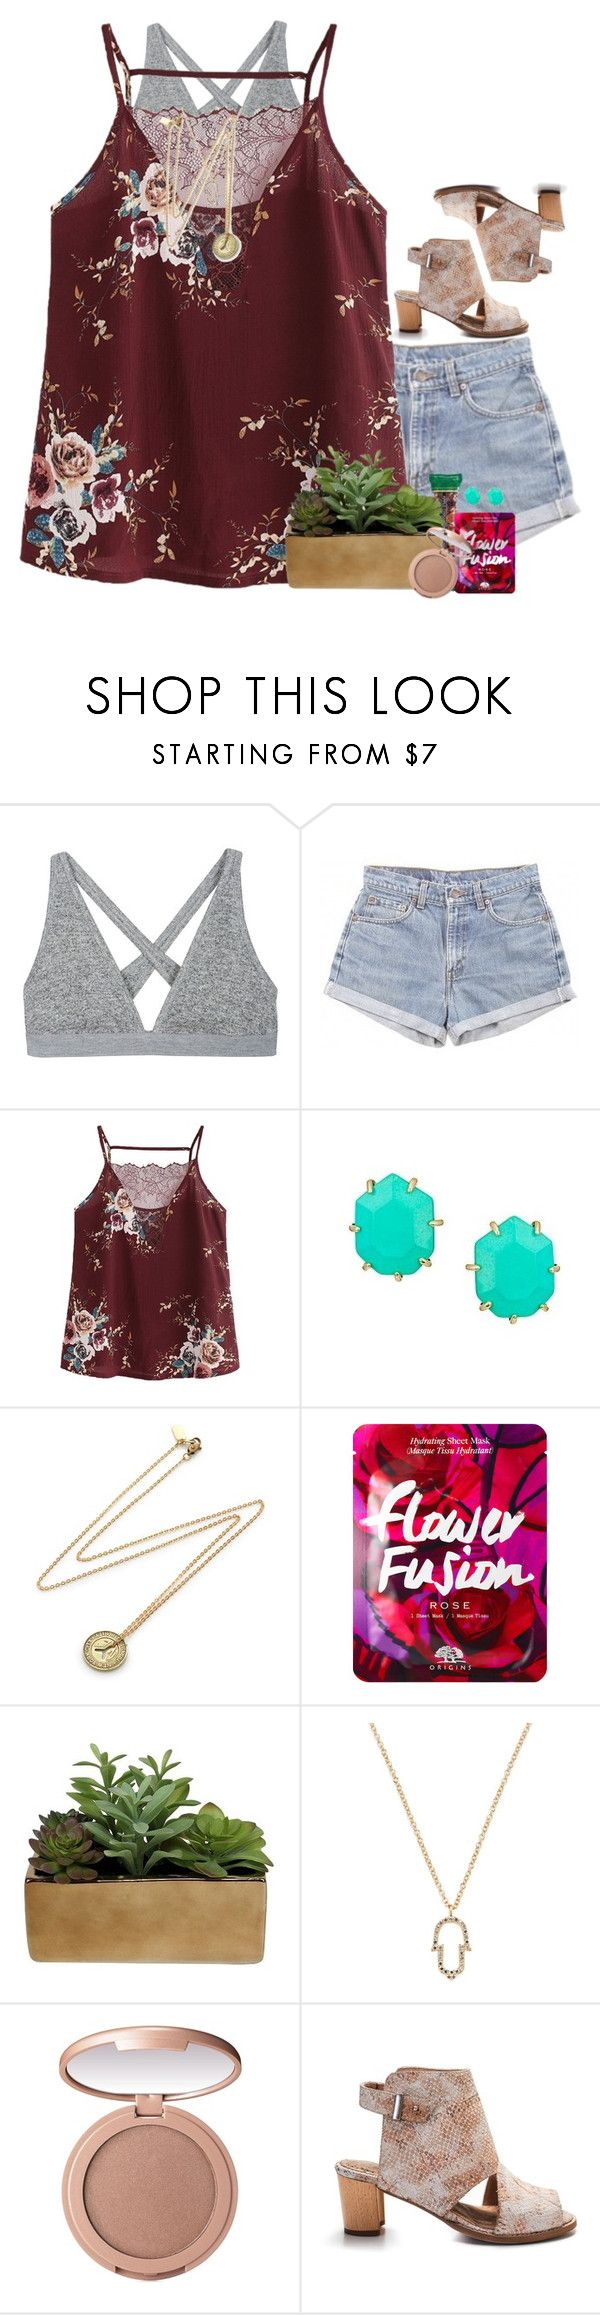 """she acts like summer & walks like rain"" by livnewell ❤ liked on Polyvore featuring T By Alexander Wang, Levi's, Kendra Scott, Erica Weiner, Threshold, Casa Reale, tarte and Alden"